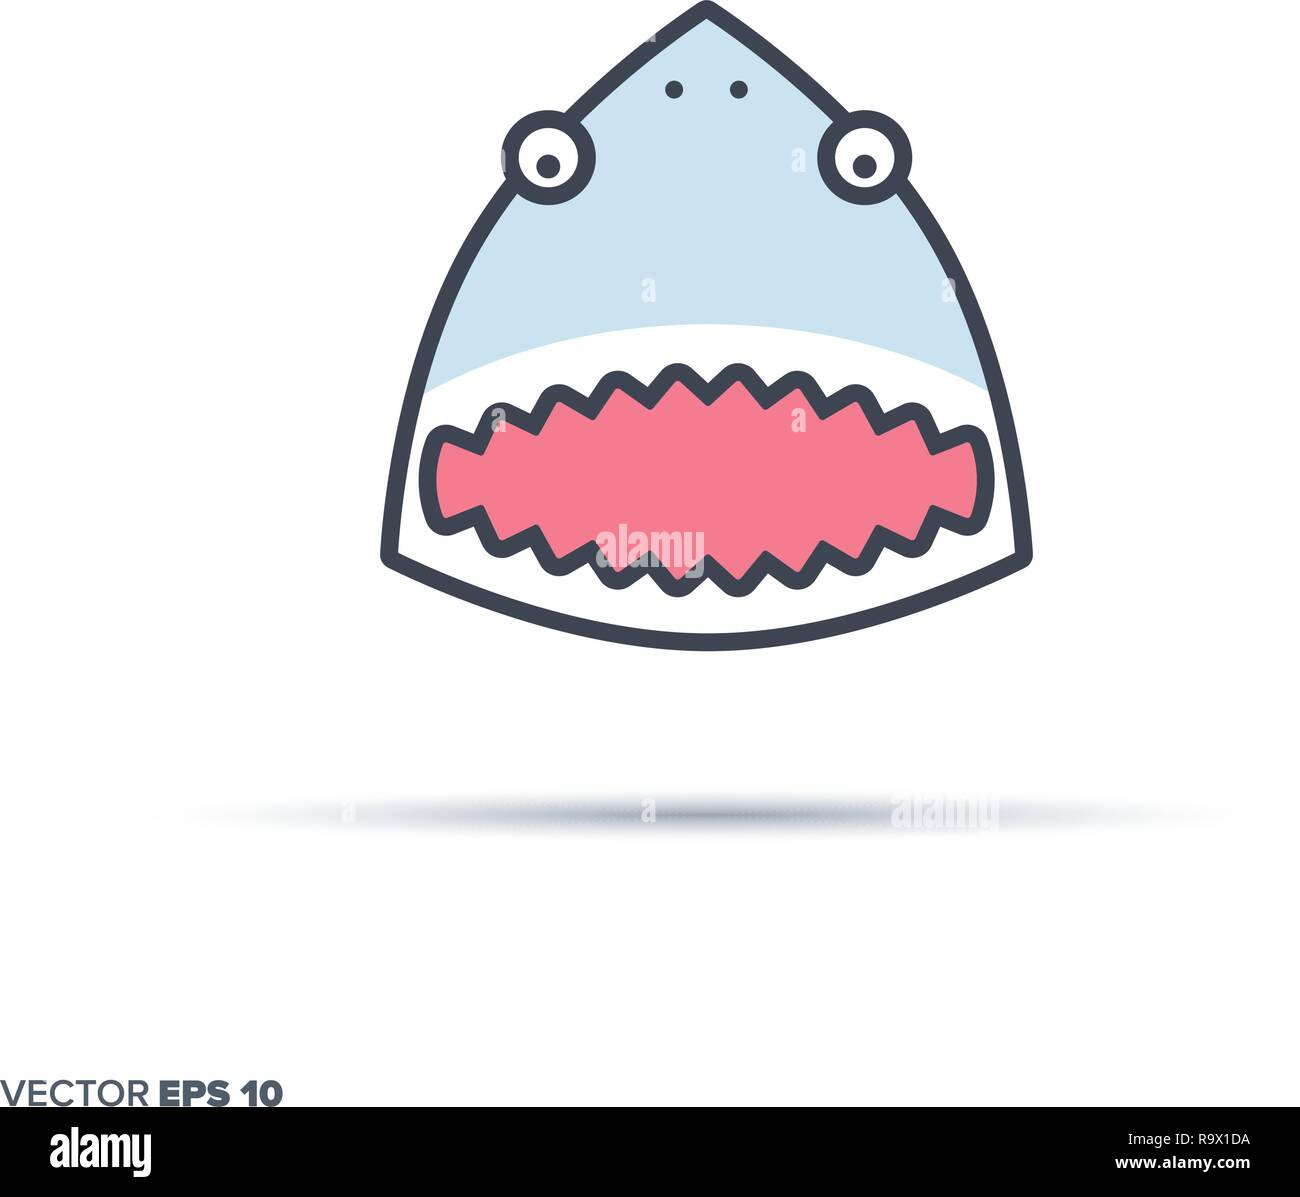 Cute shark face outline vector icon with color fill. Funny animal illustration. - Stock Vector